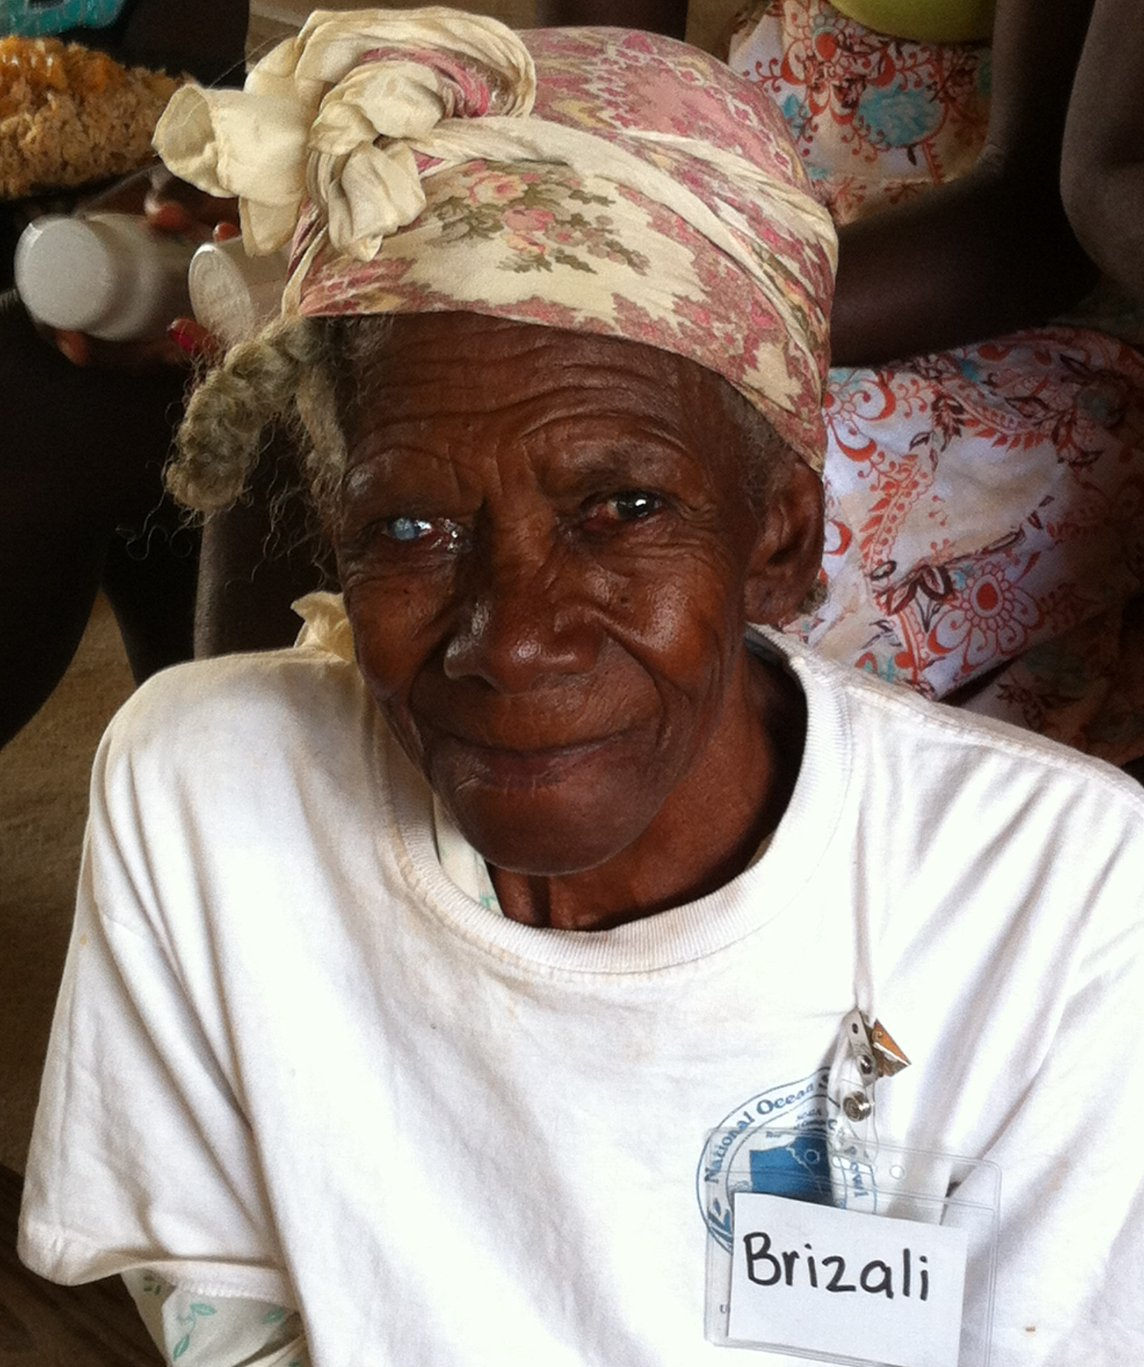 Our beloved Brizali has passed away. She will be greatly missed.